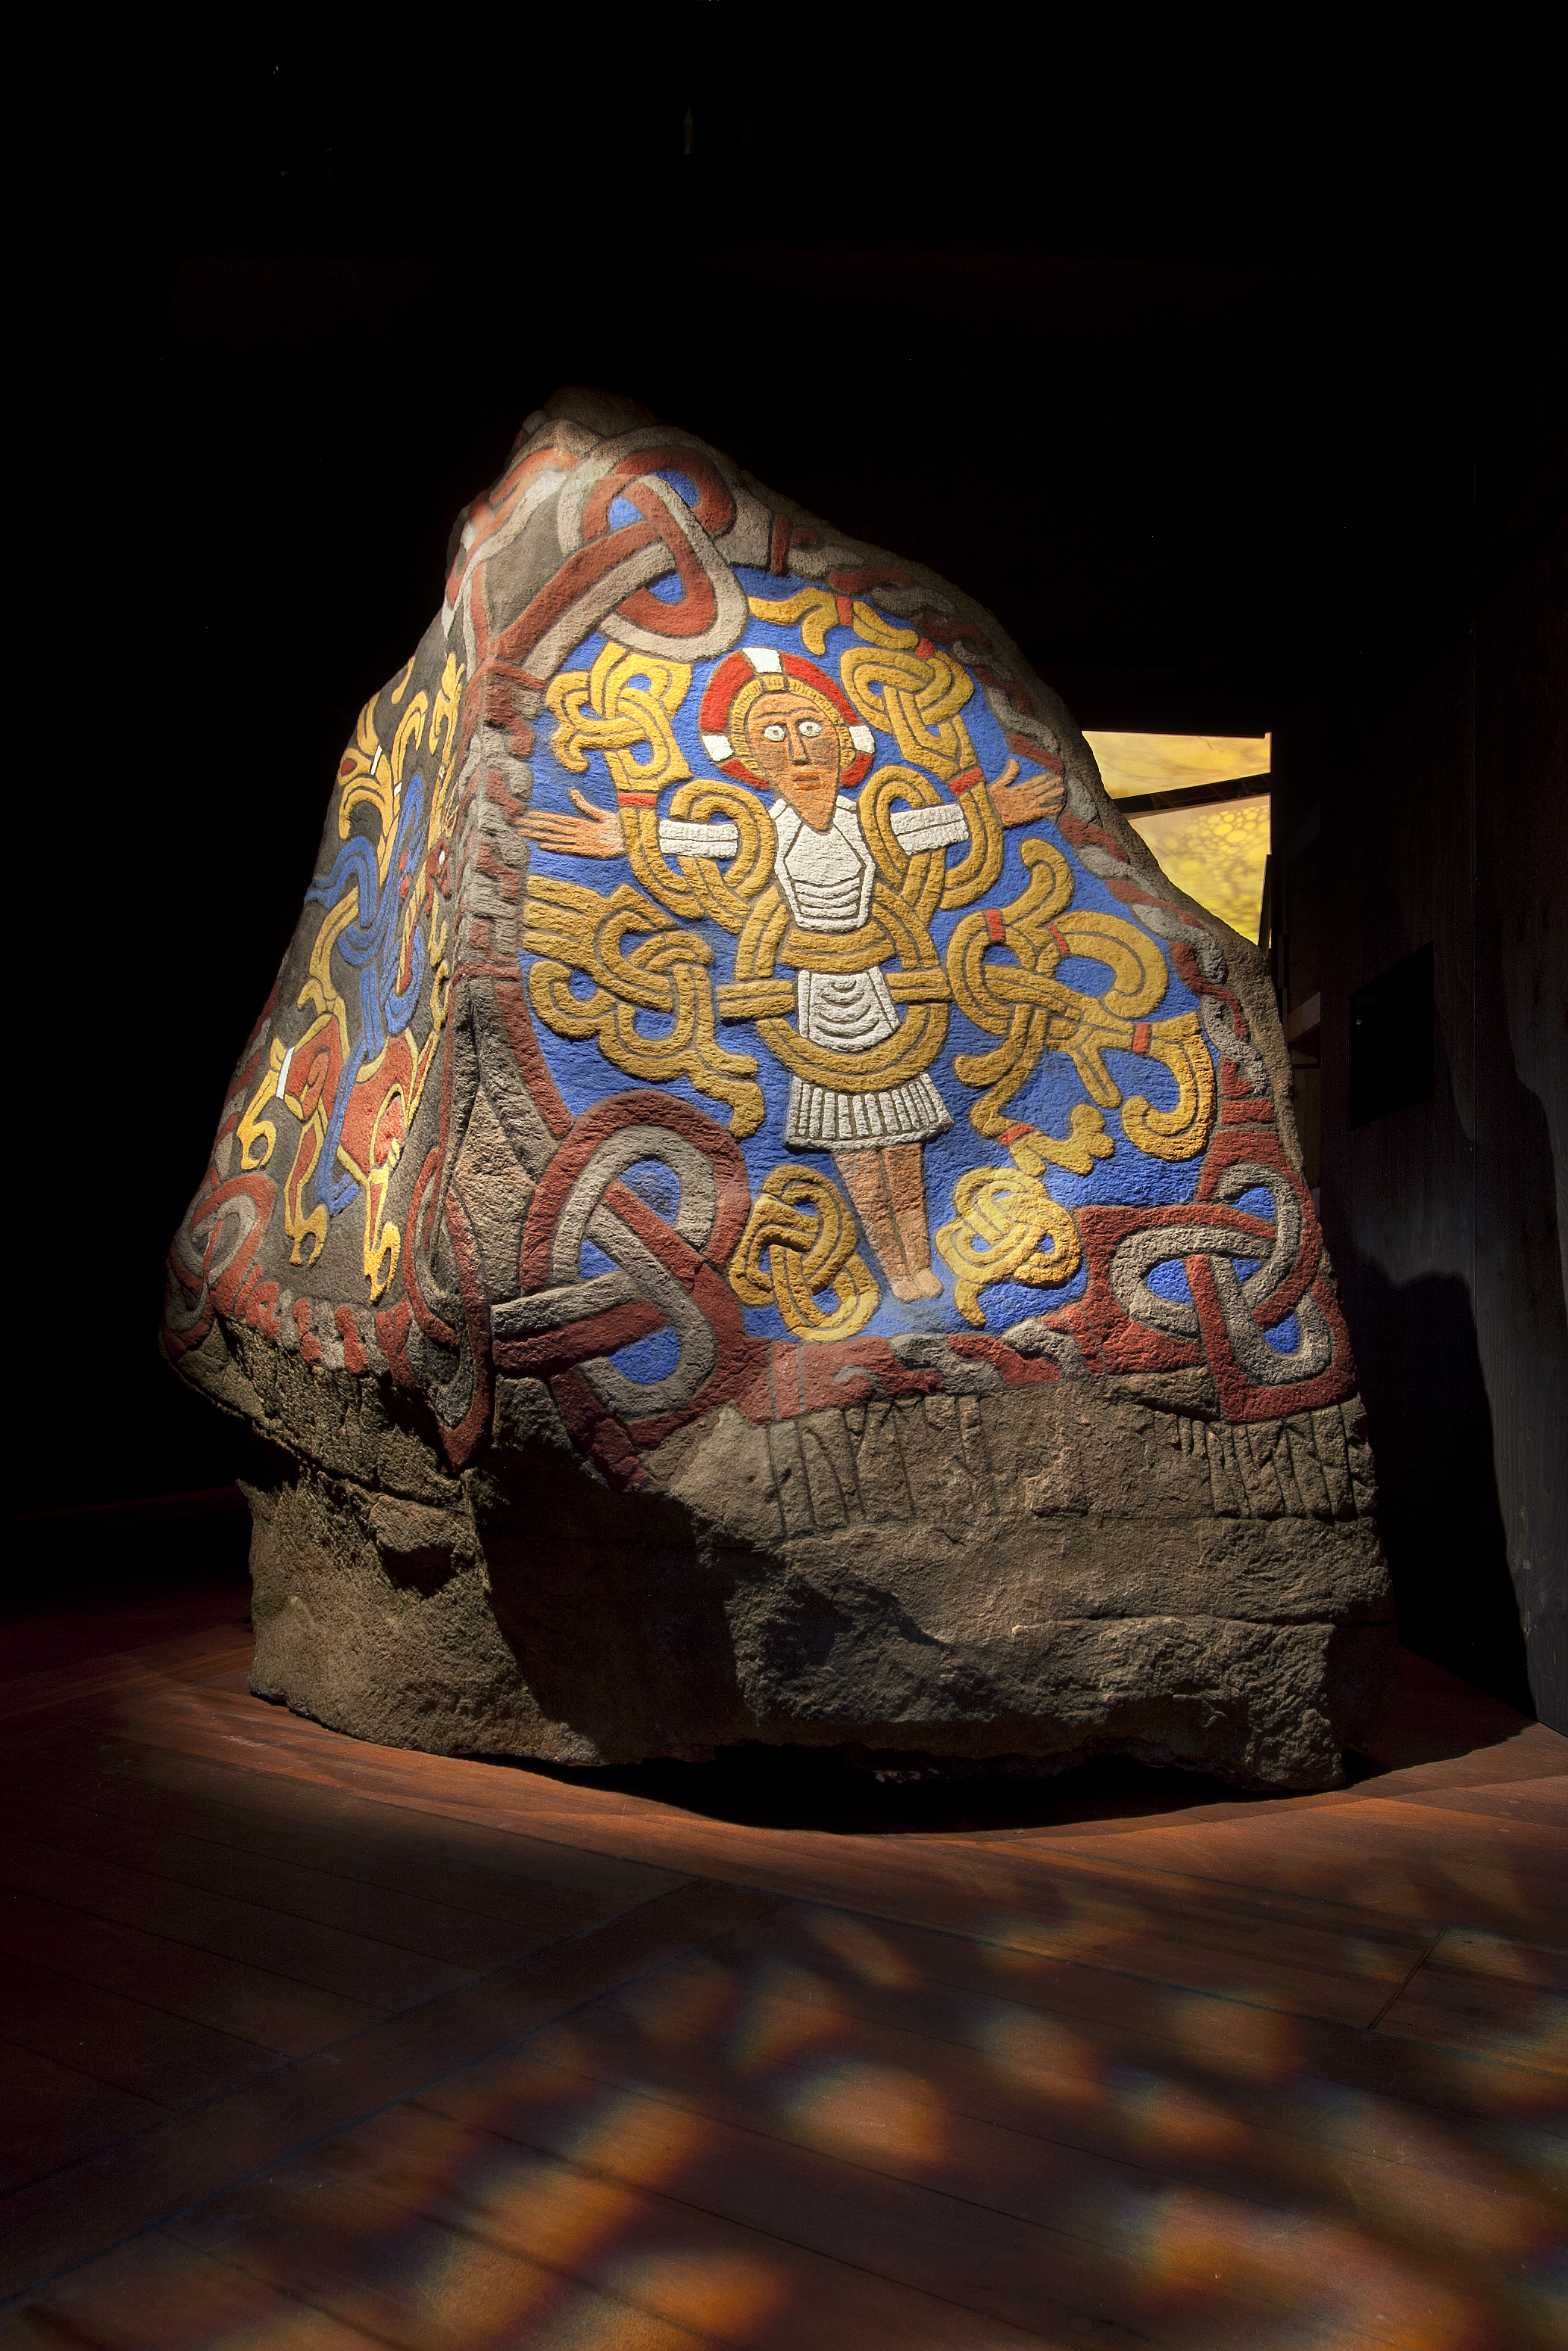 https://upload.wikimedia.org/wikipedia/commons/9/93/The_Jelling_Stone_-_VIKING_exhibition_at_the_National_Museum_of_Denmark_-_Photo_The_National_Museum_of_Denmark_%289084035770%29.jpg